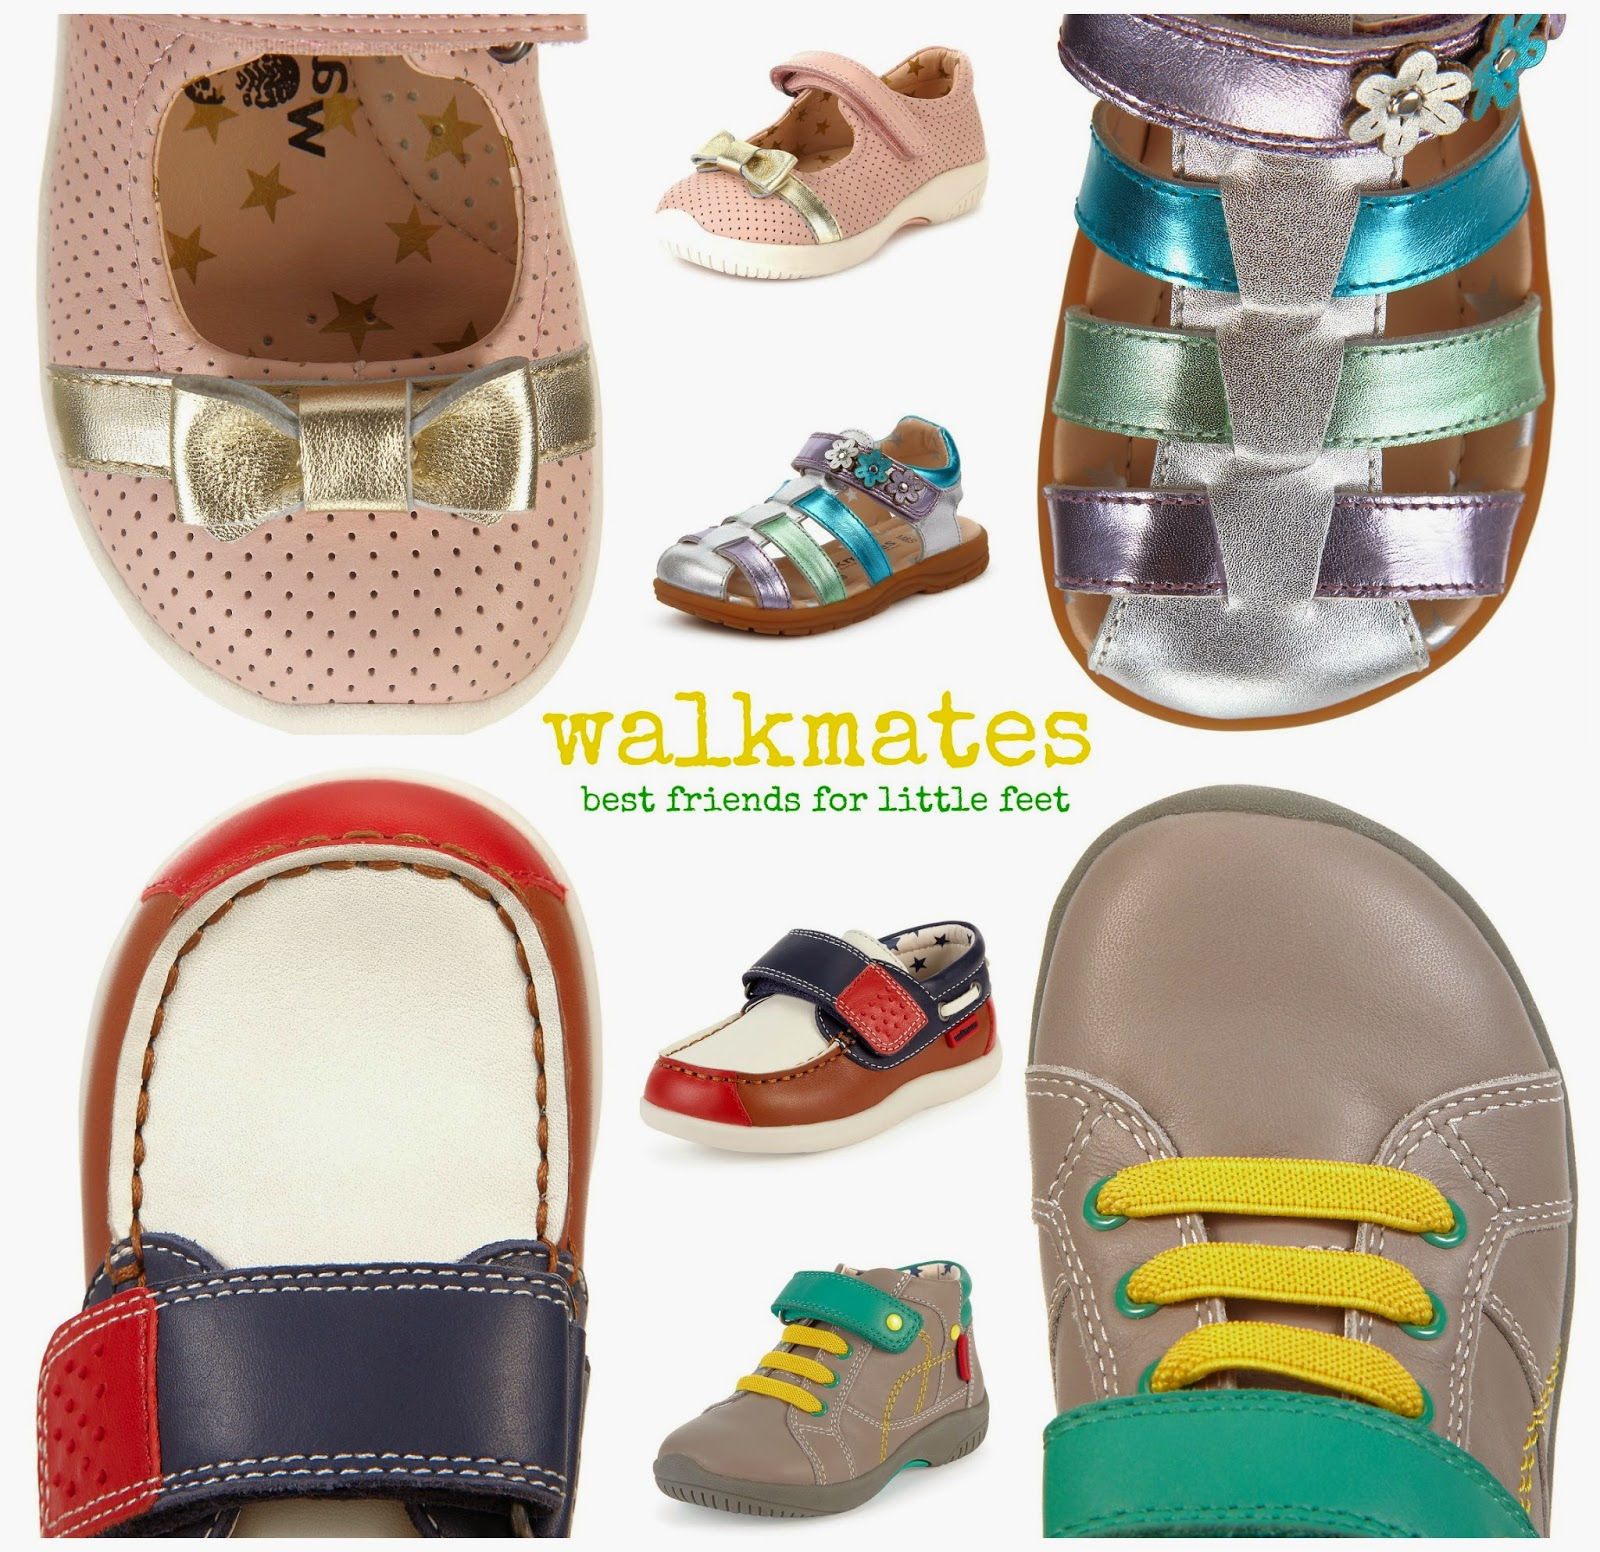 mamasVIB | V. I. BUYS: Why Marks & Spencer Walkmates are our new best friend… | walk mates shoes | Marks and spencer | M&S | walk mates |} kids shoes | podiatry approved shoes | kids shoes for growing feet | high street shoes | kids shoes under £30 | star print boots | silver t-bars | school shoes | safe shoes for kids | fave kid shoes | mamasVIb | silver shoes | kids fashion | footwear | kids footwear  new collection | shoes  up to size 11 for kids | m&S | marks | high strew | mamasvib | bonita turner